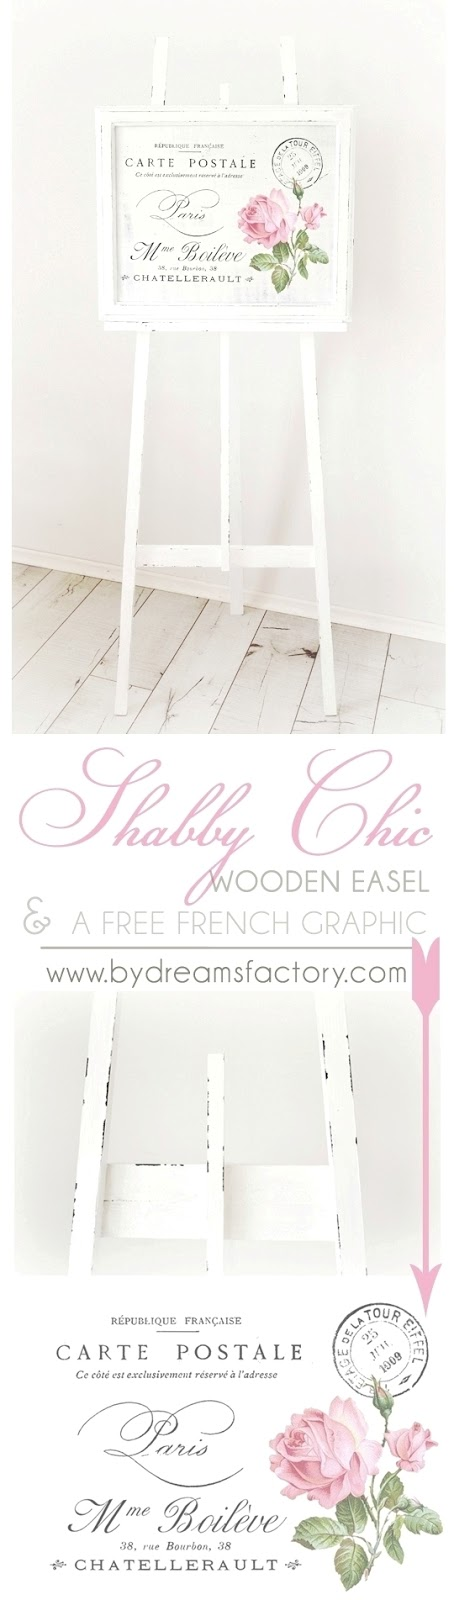 shabby chic wooden easel copy